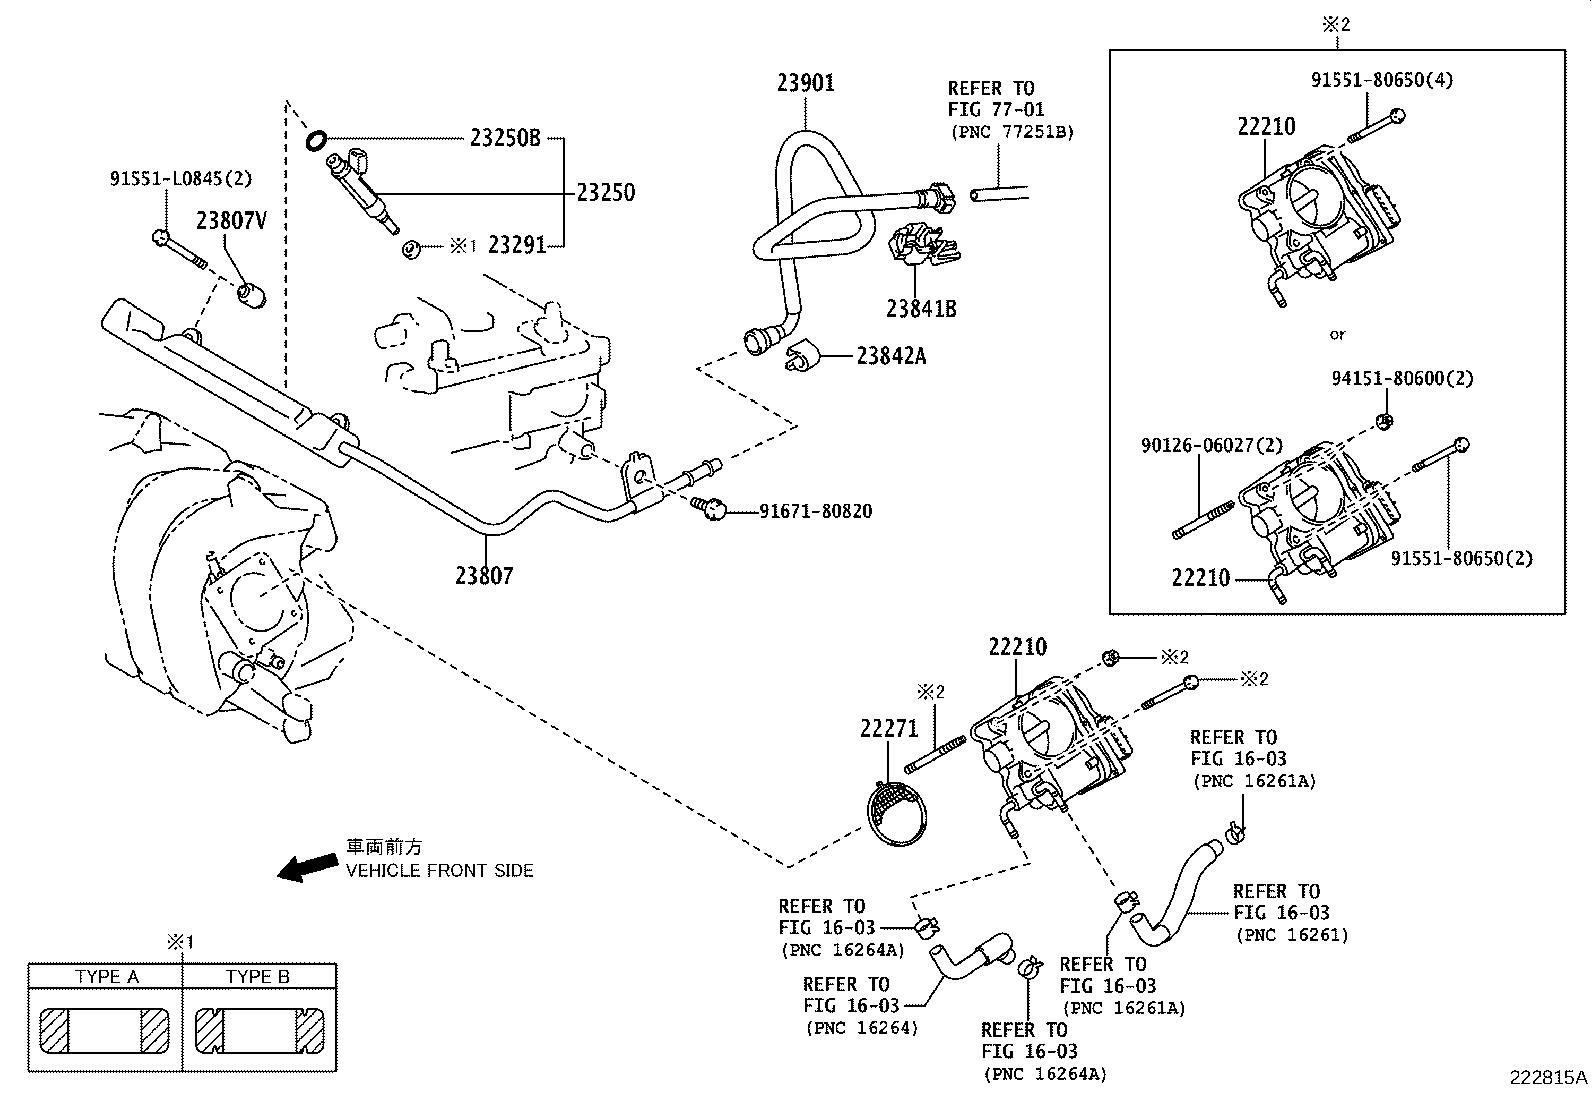 Scion Xd Tube Sub Assembly Fuel System Injection